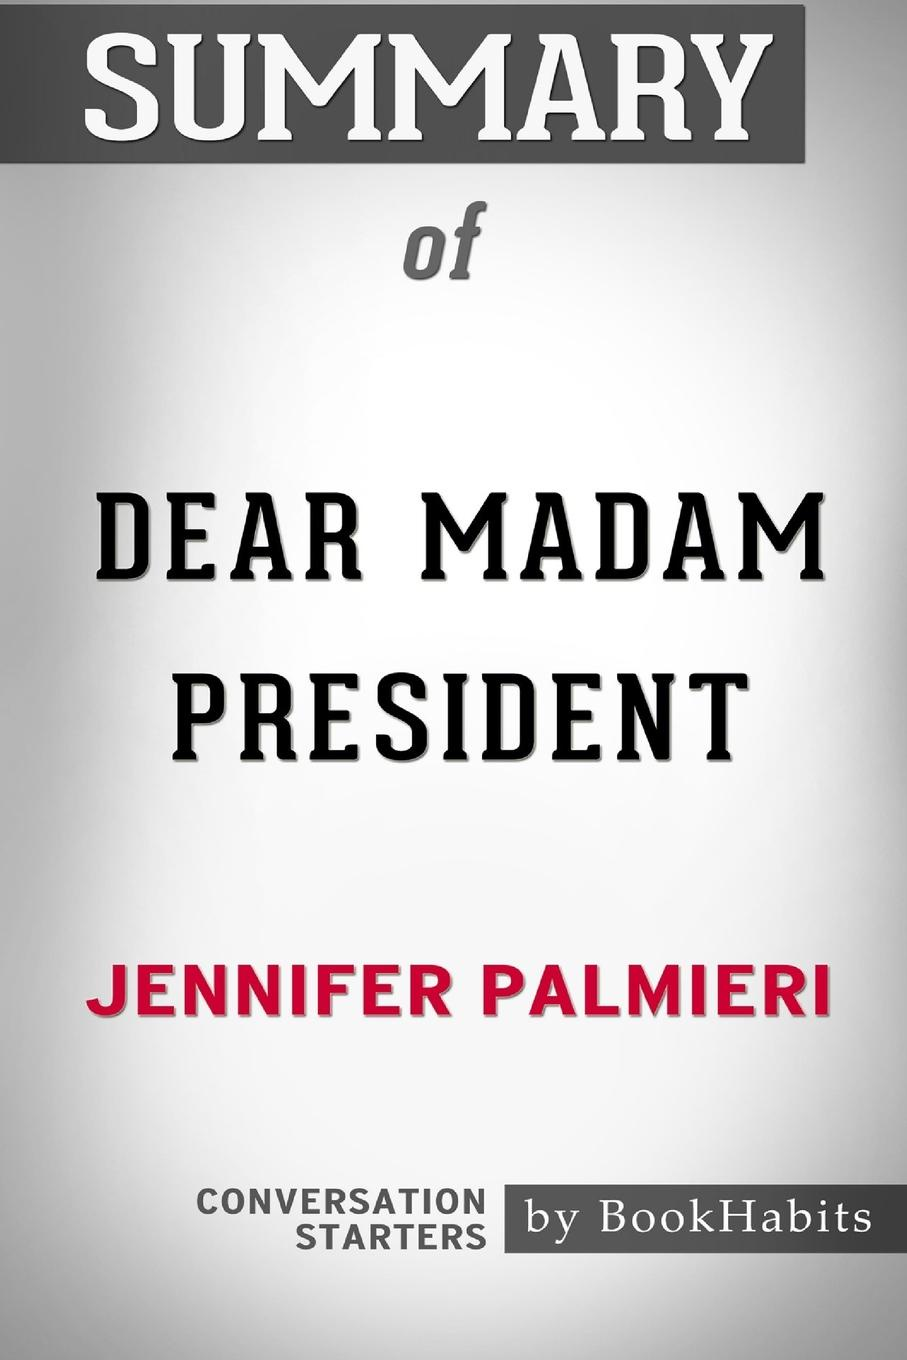 BookHabits Summary of Dear Madam President by Jennifer Palmieri. Conversation Starters bassett jennifer the president s murderer